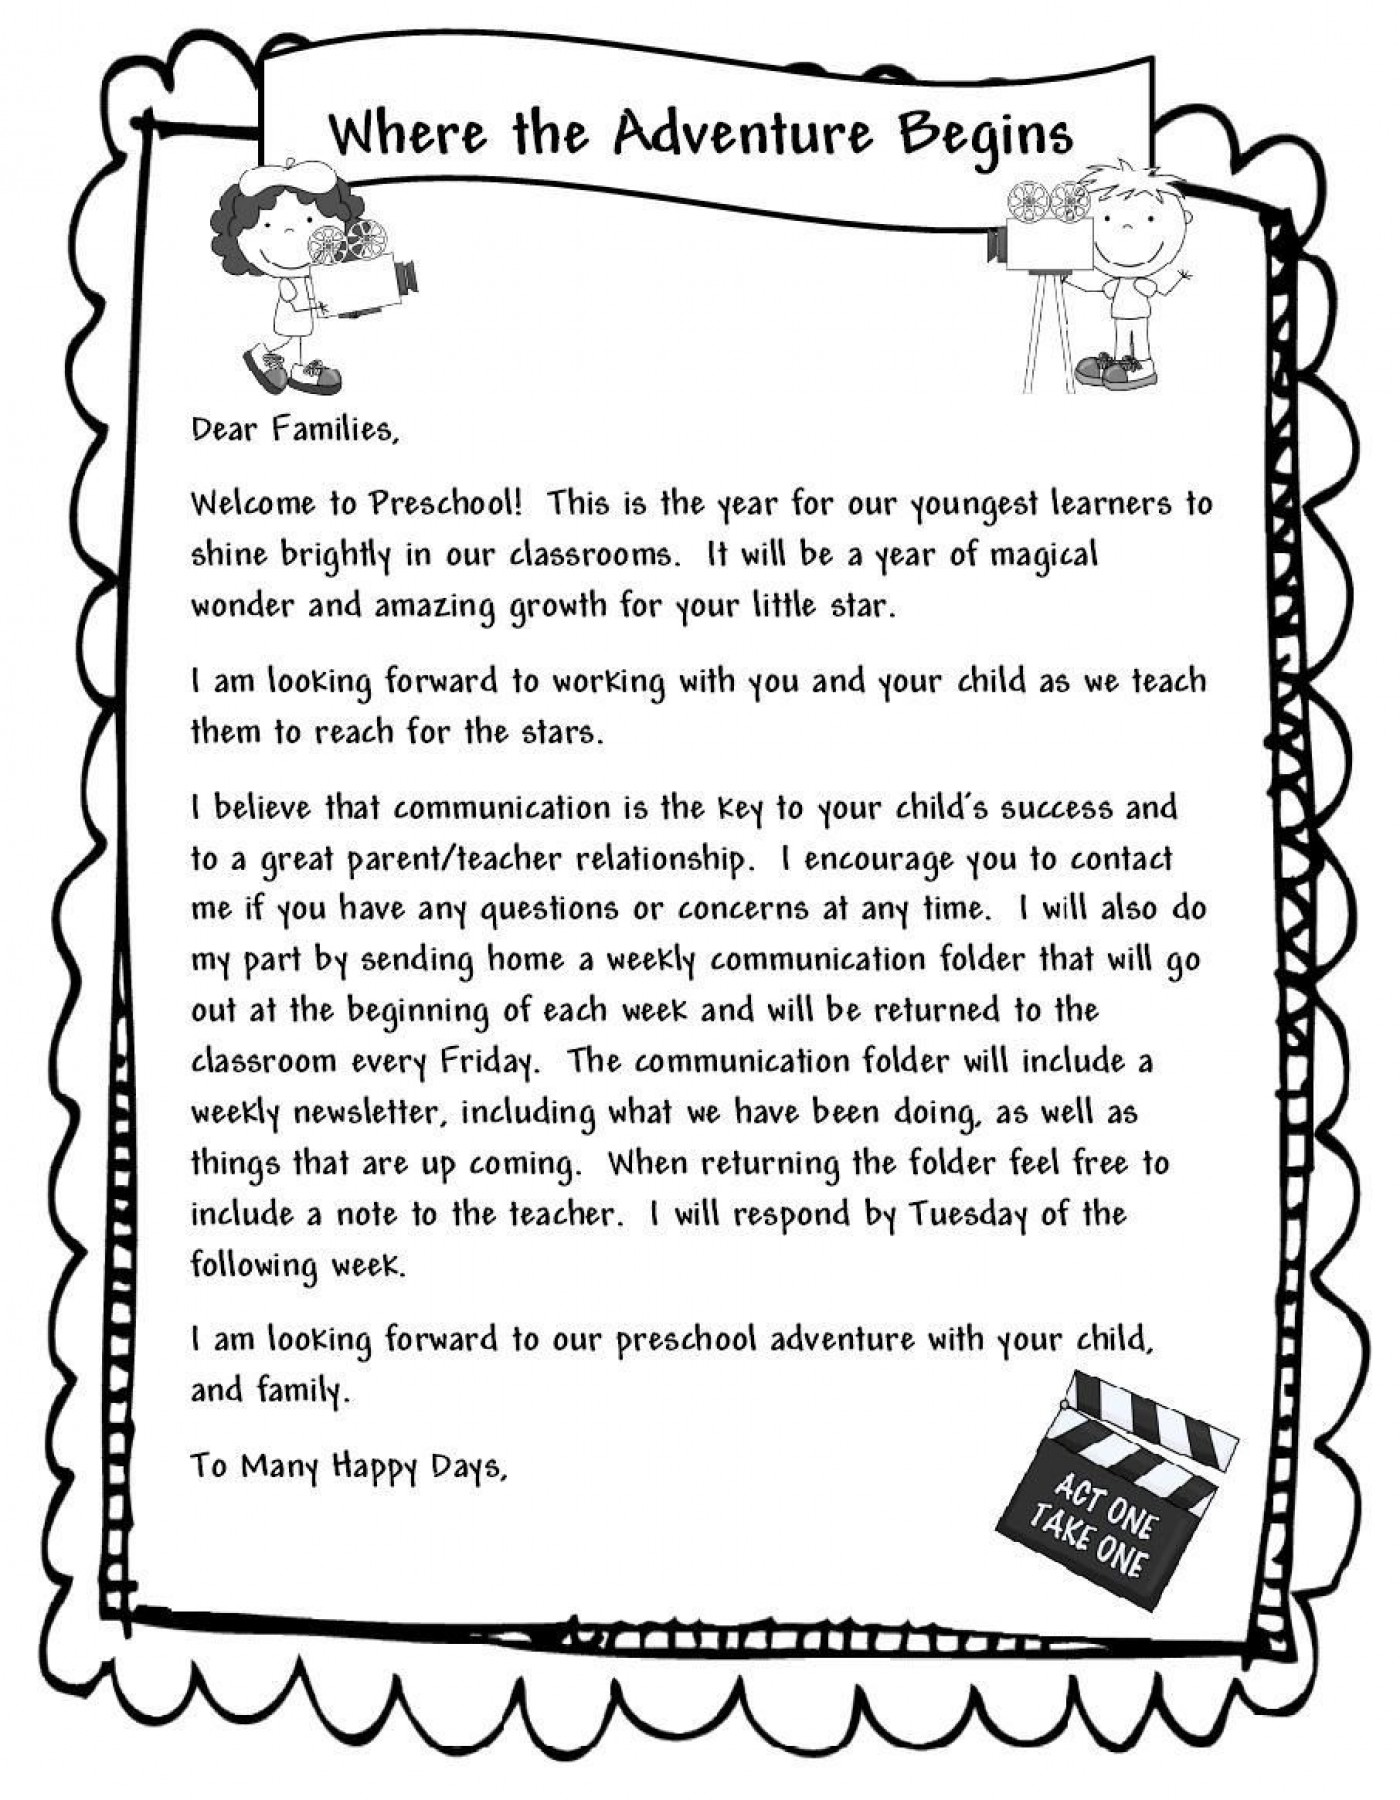 000 Unbelievable Teacher Welcome Letter Template Example  Preschool To Parent From Free1400